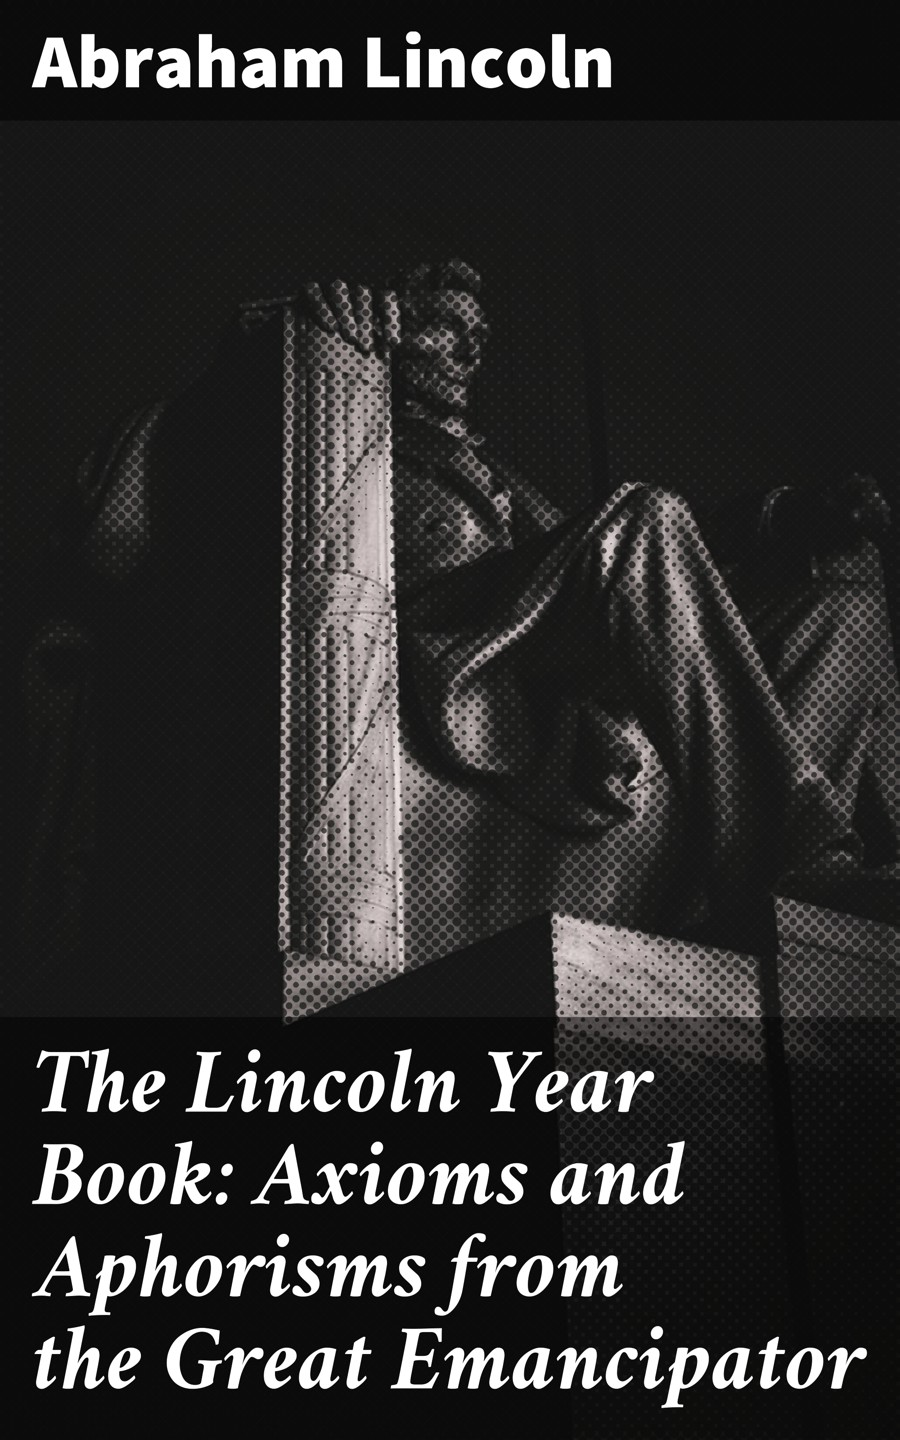 лучшая цена Lincoln Abraham The Lincoln Year Book: Axioms and Aphorisms from the Great Emancipator